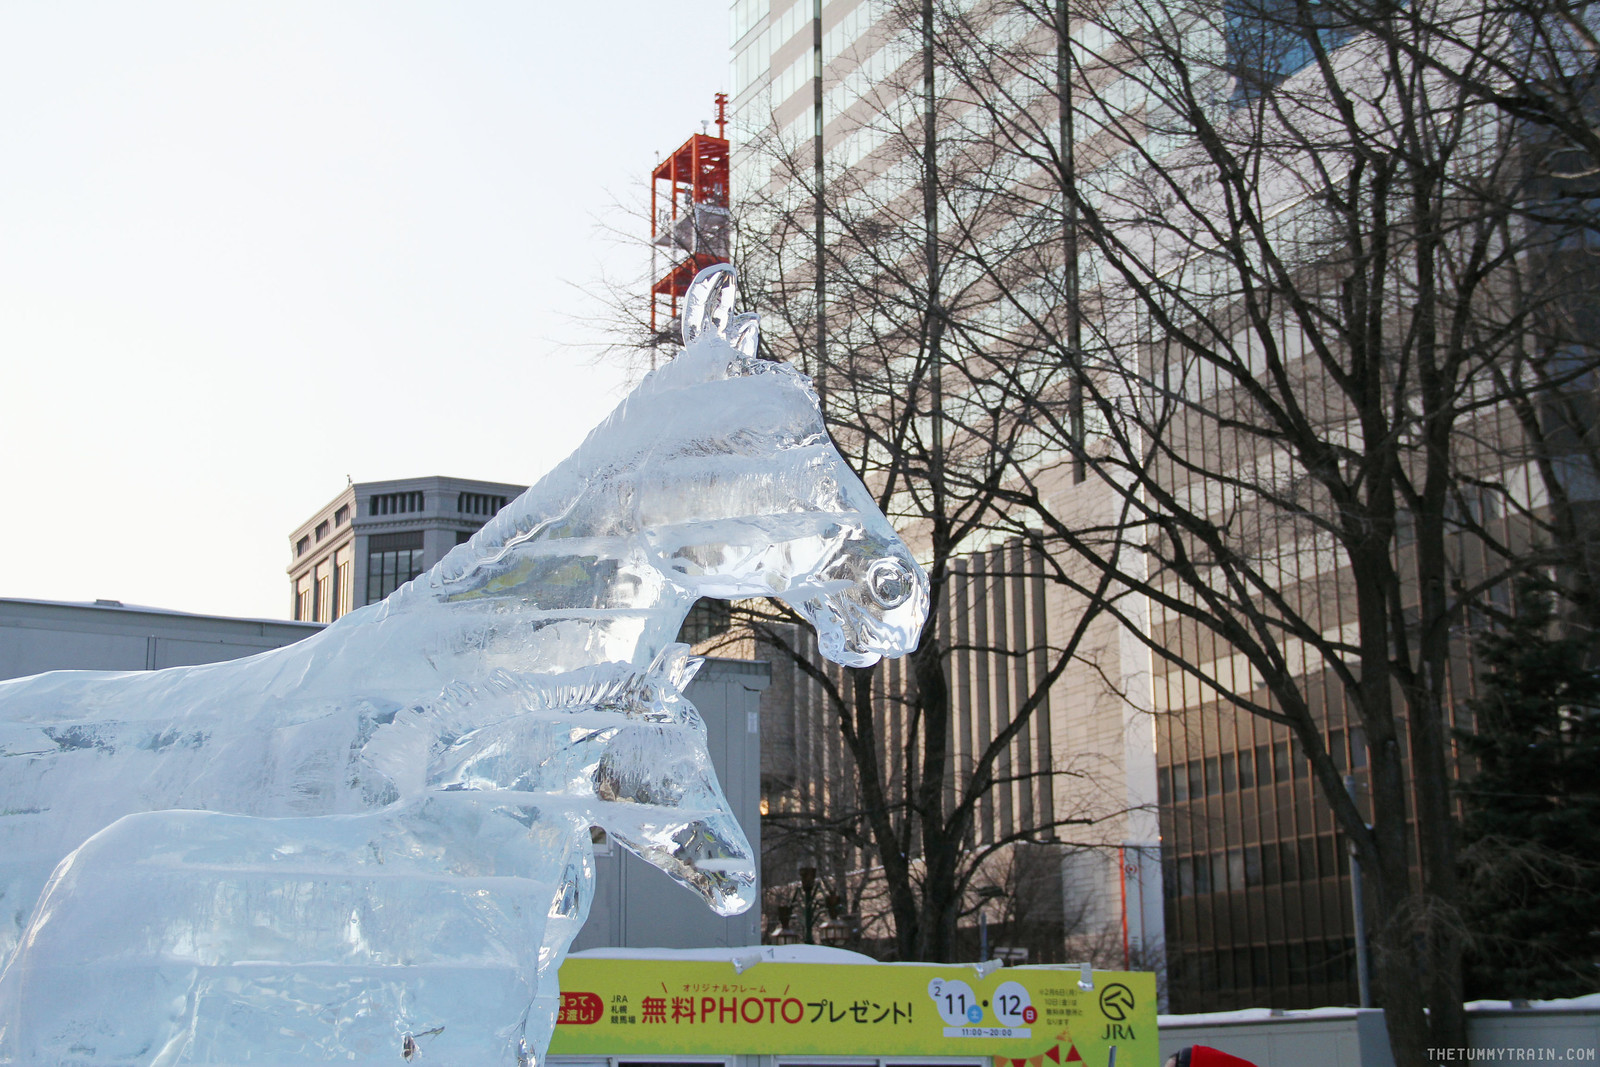 32763857452 425cb5f42d h - Sights, Sounds, and Smells at the 68th Sapporo Snow Festival at Odori Park